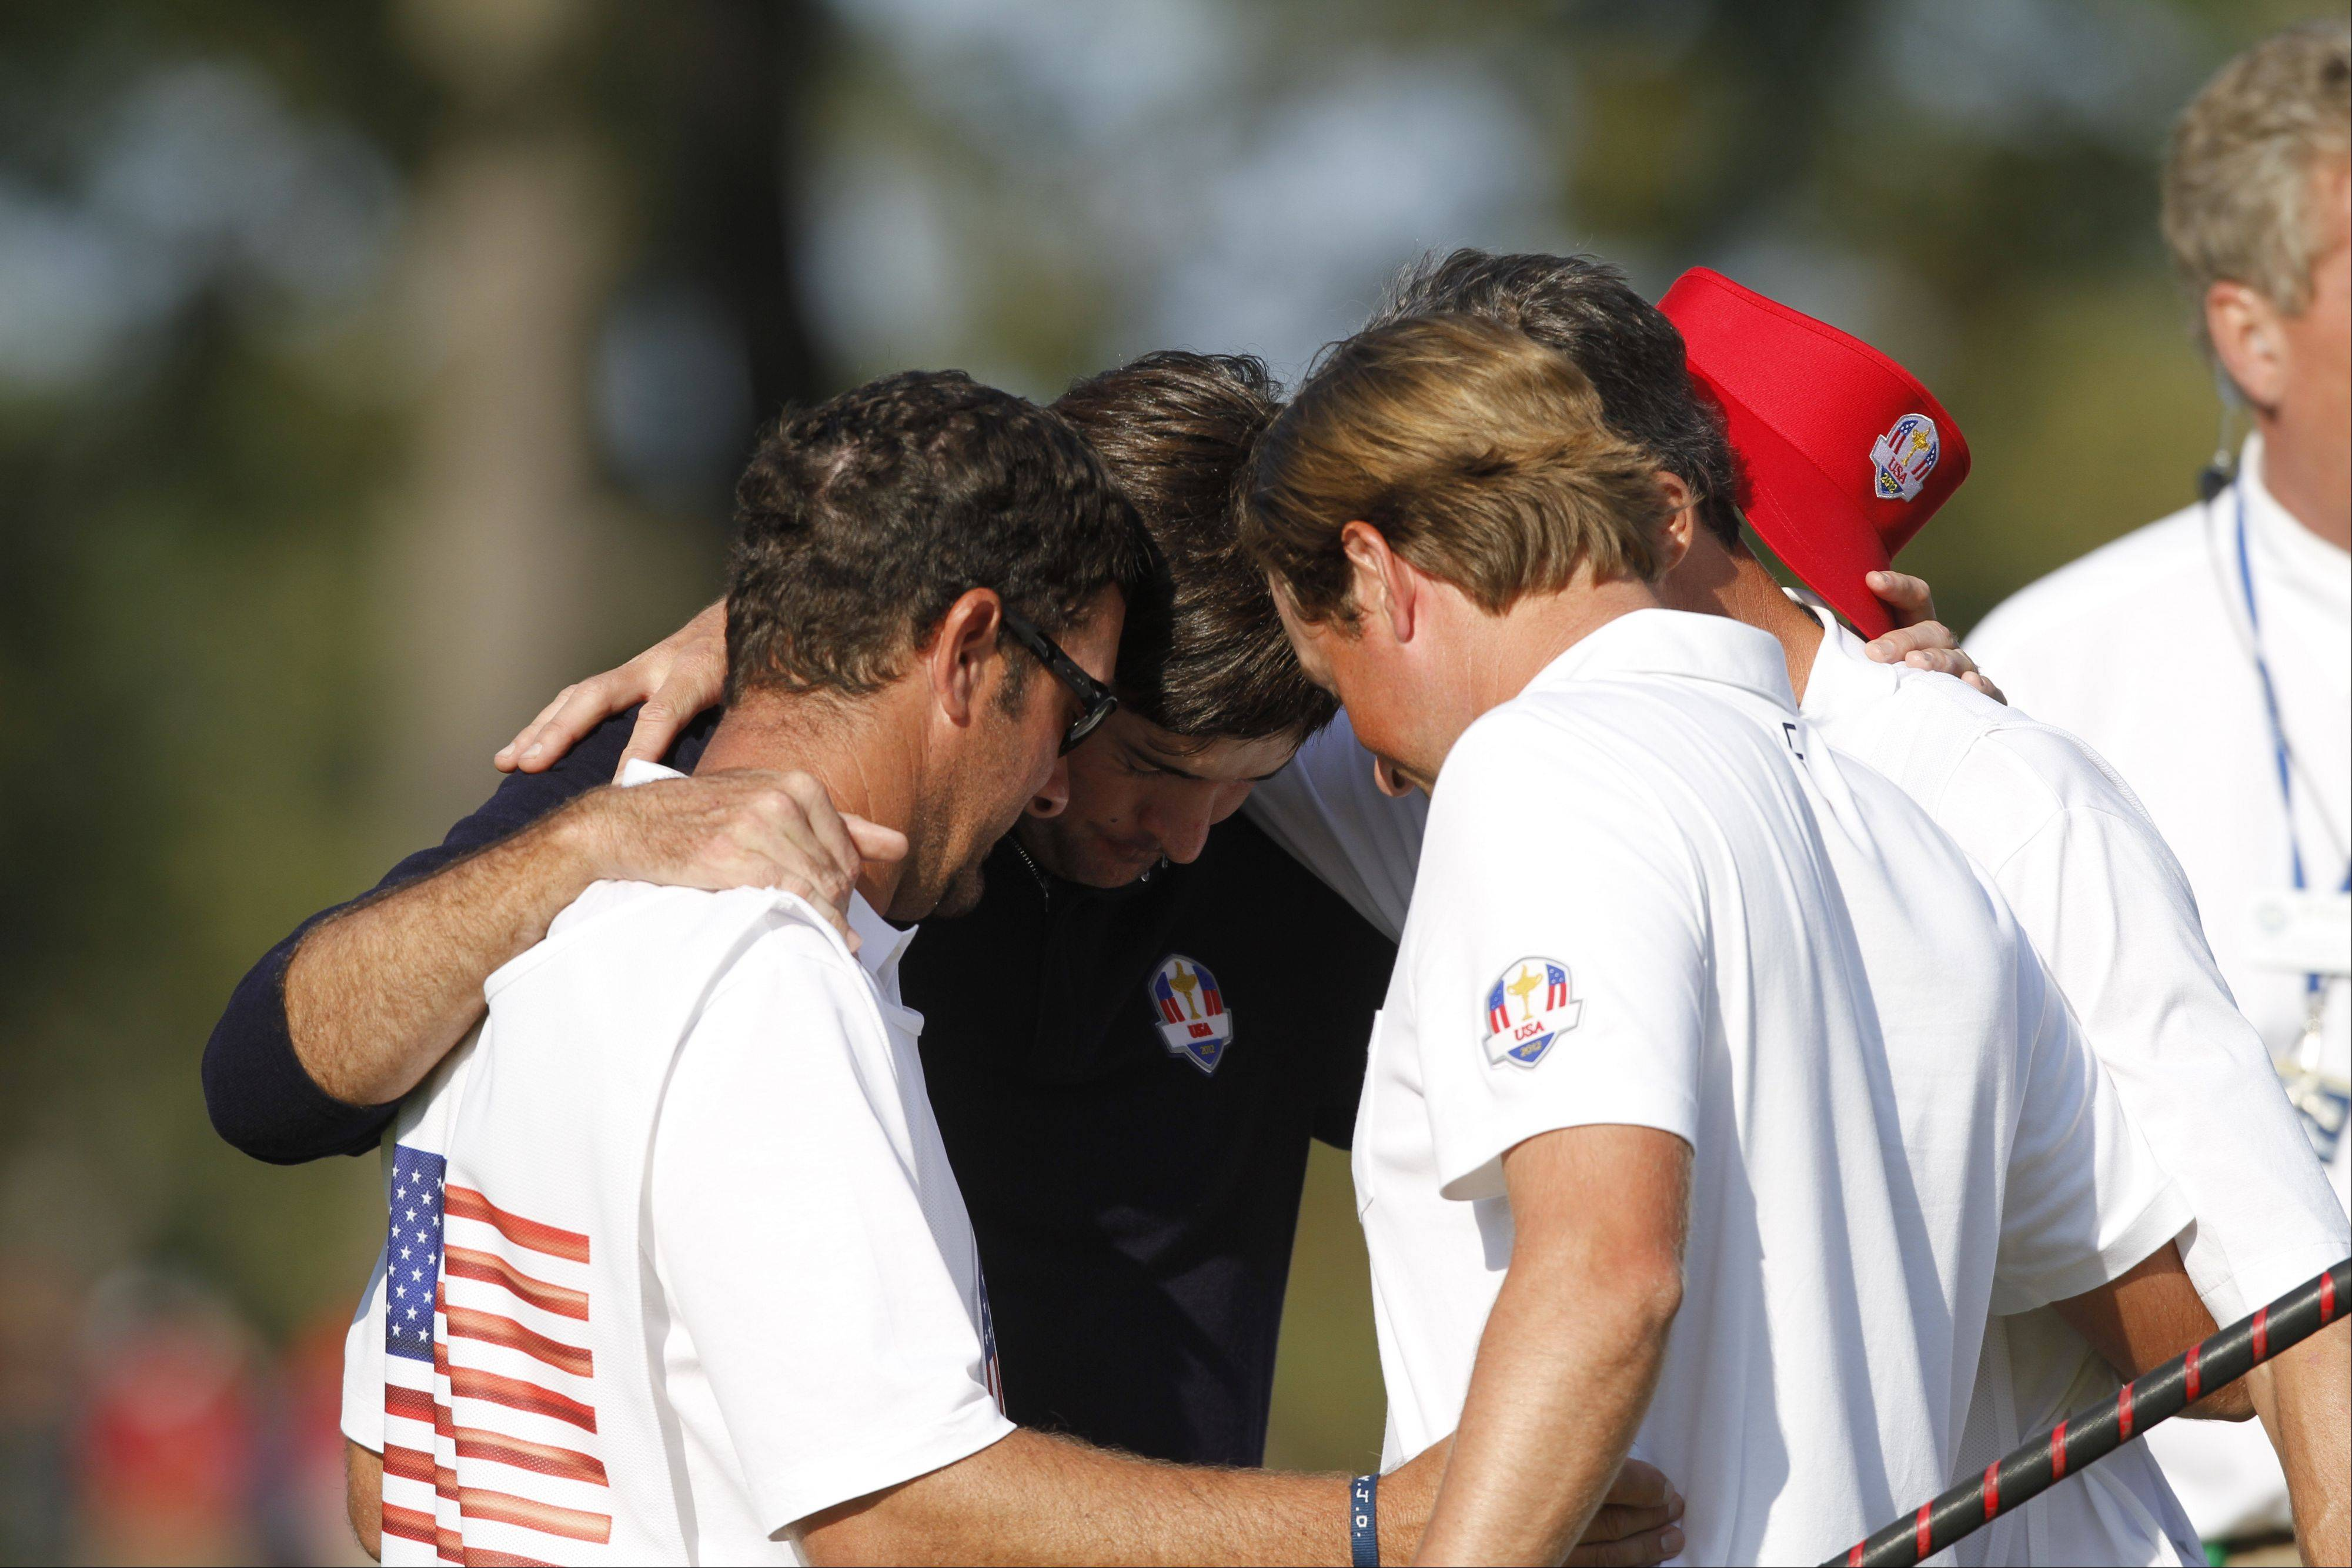 Bubba Waston prays after winning his afternoon match Friday at the 2012 Ryder Cup at Medinah Country Club.